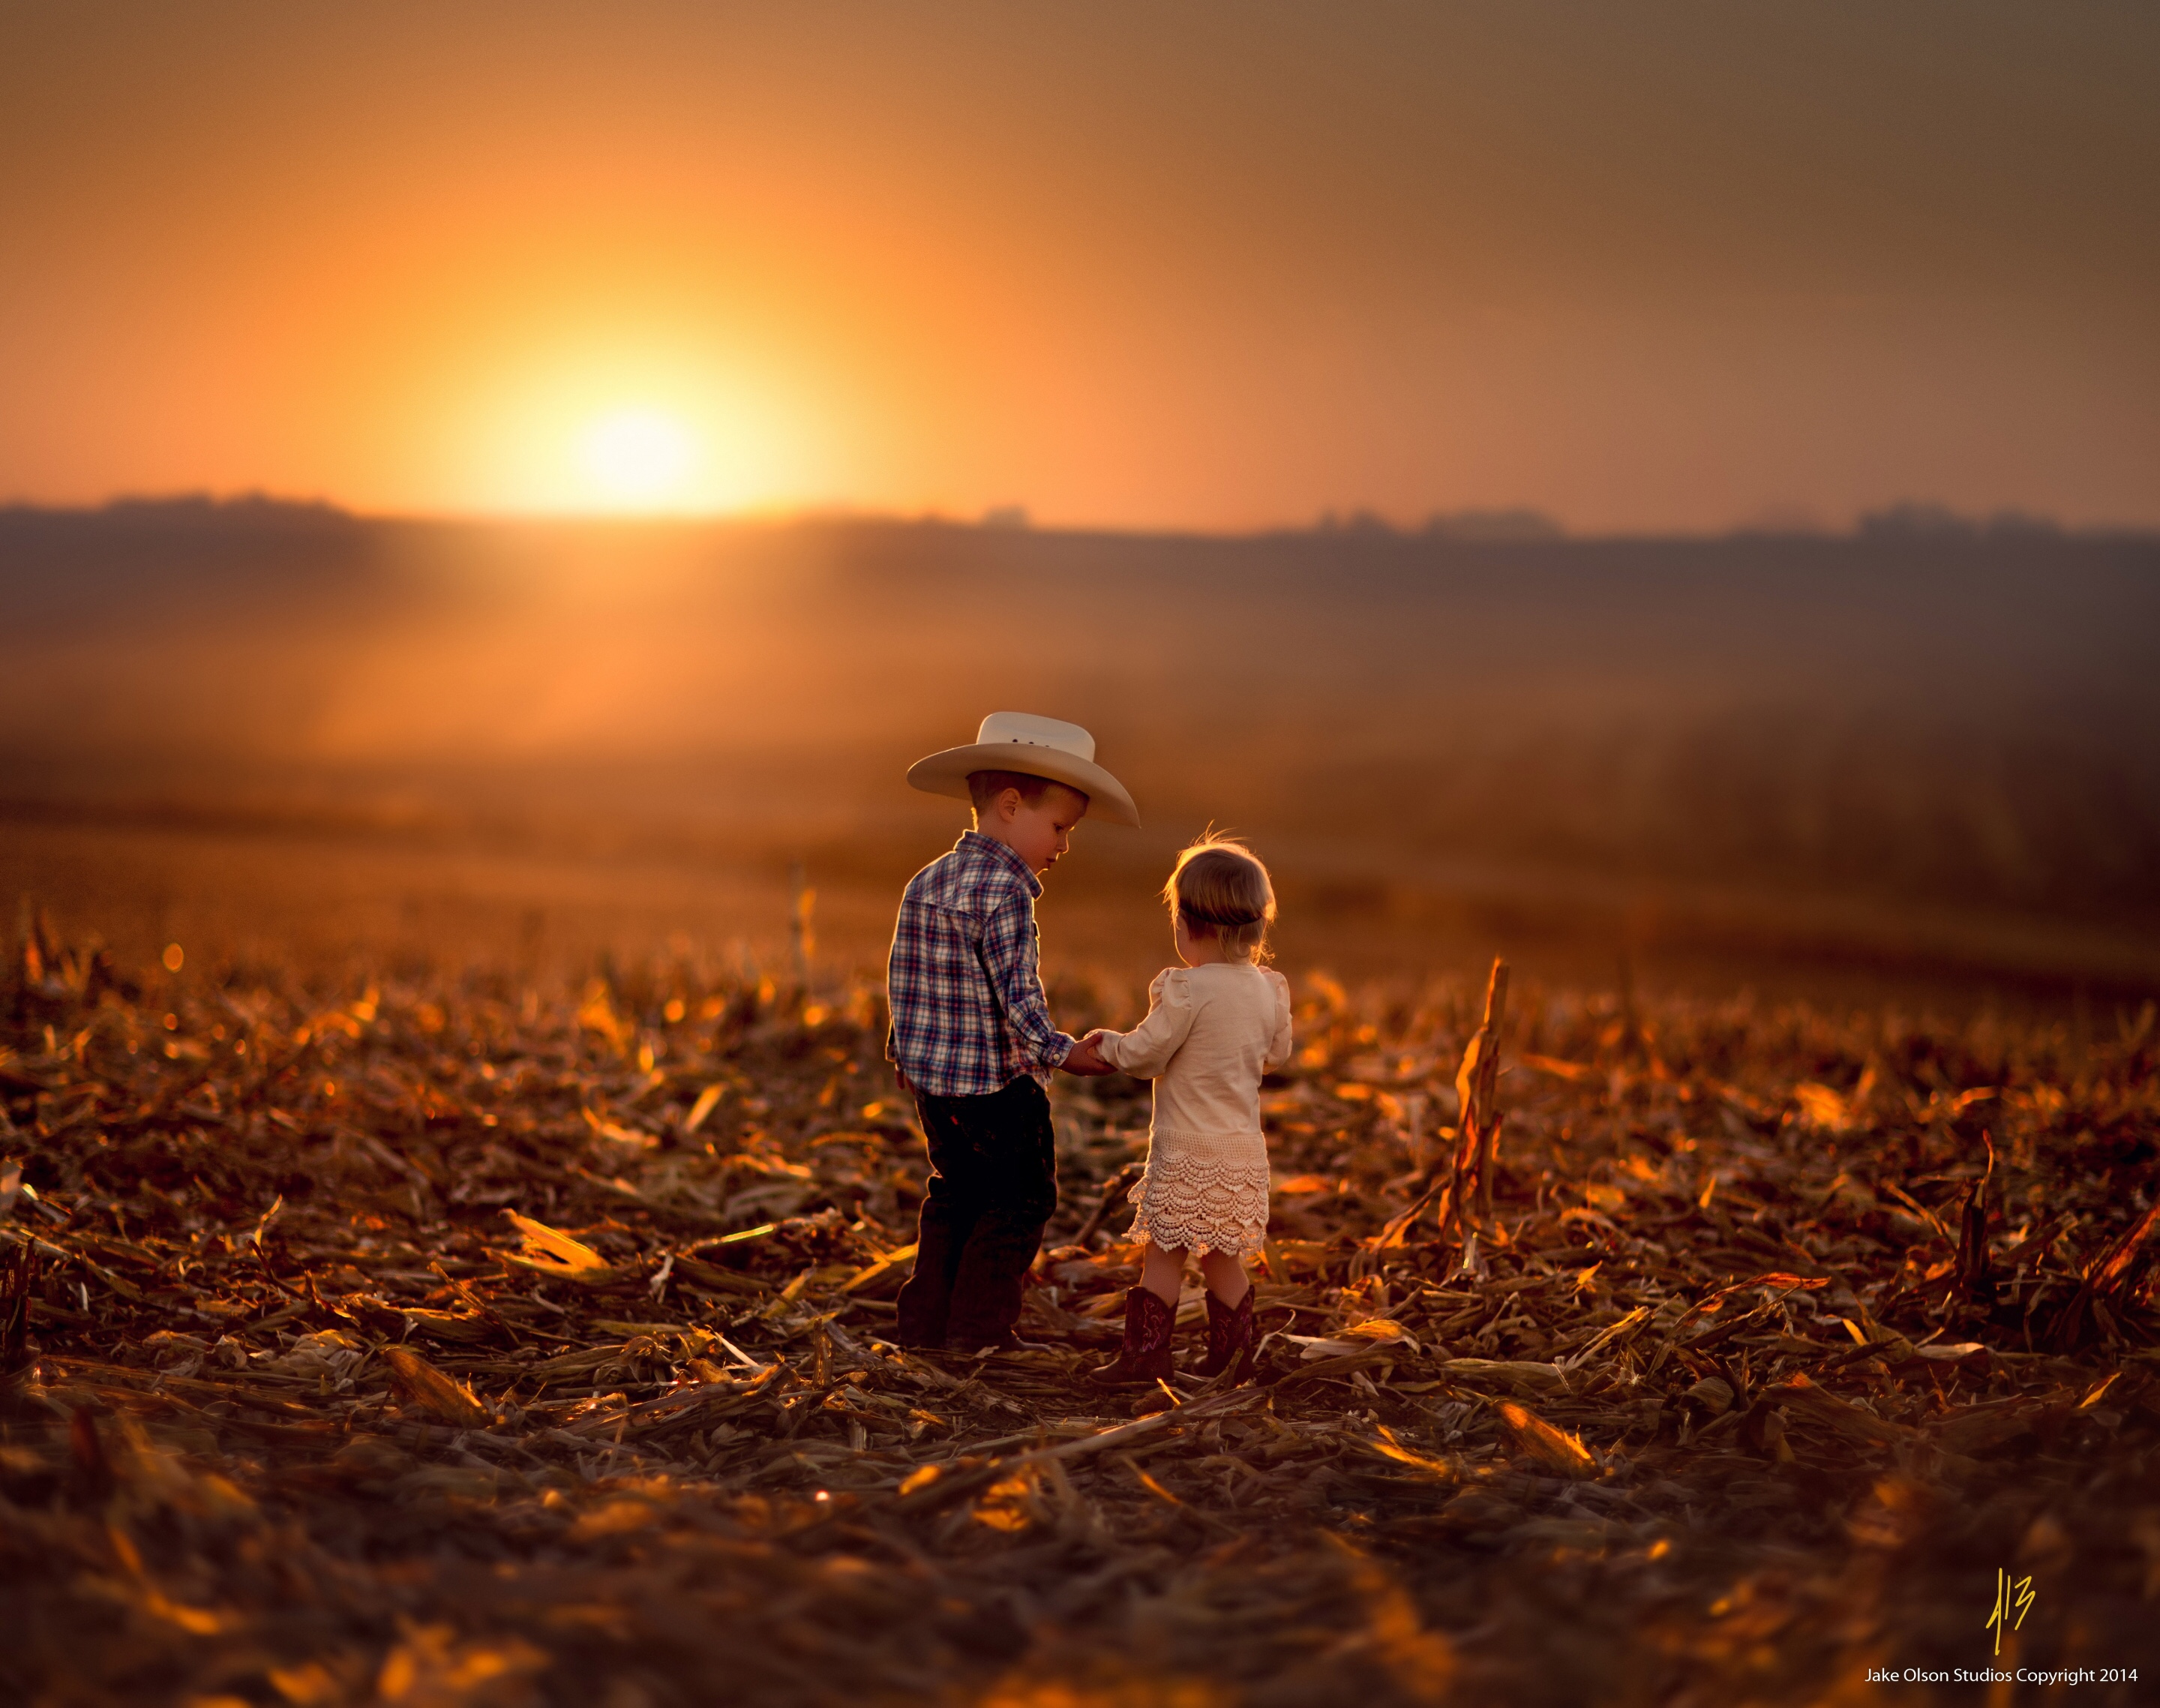 jake olson photography tutorial